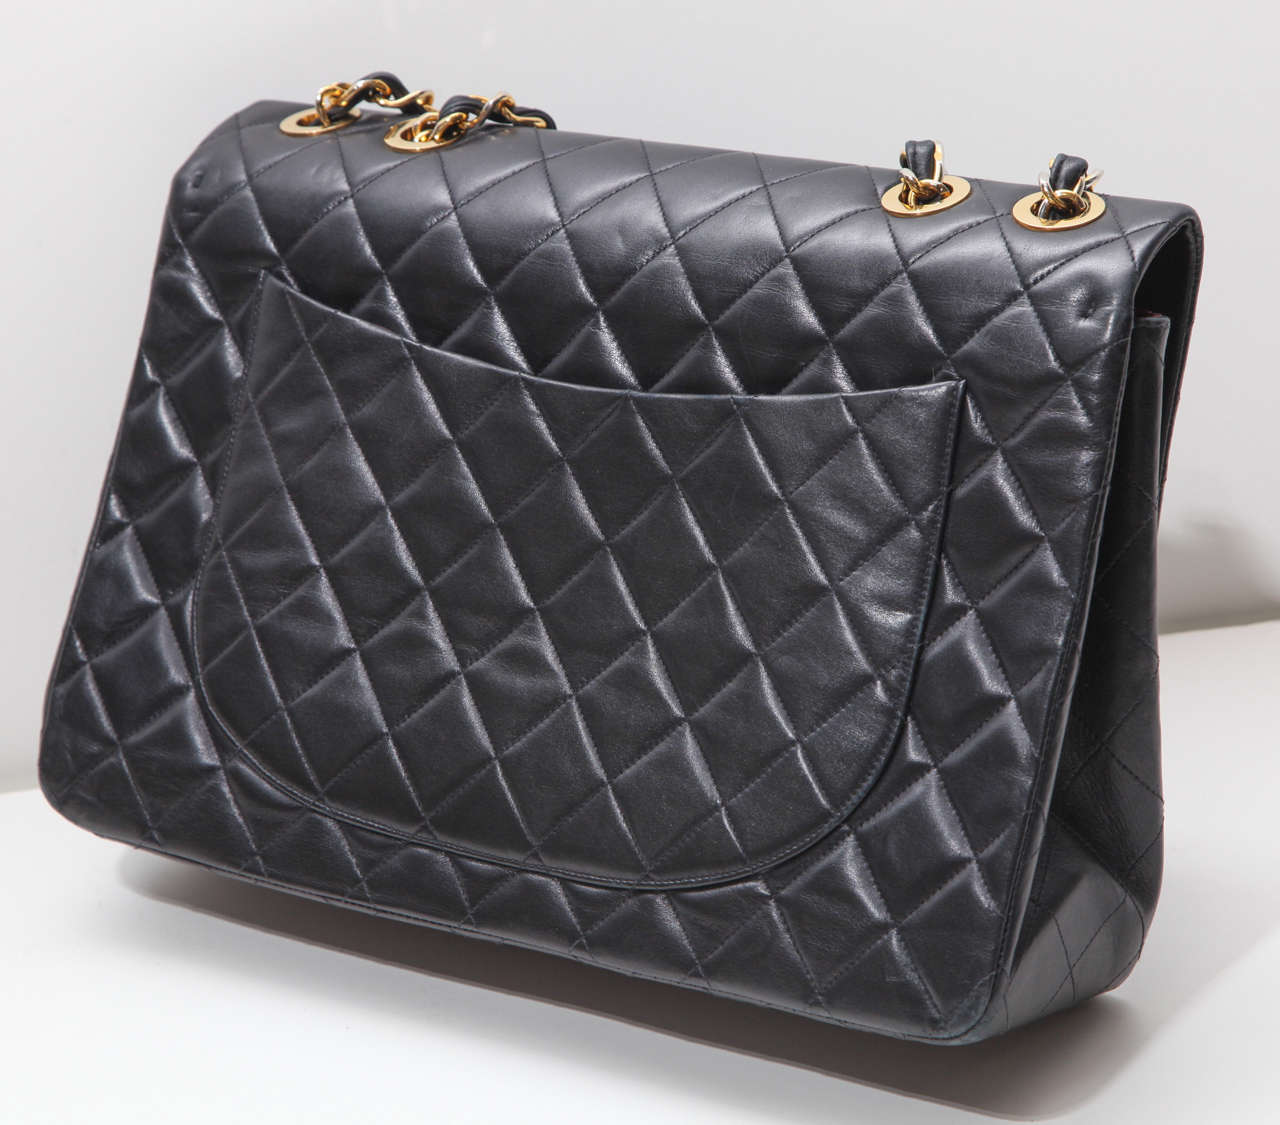 7814b24cee265b Chanel Handbags Near Me | Stanford Center for Opportunity Policy in ...